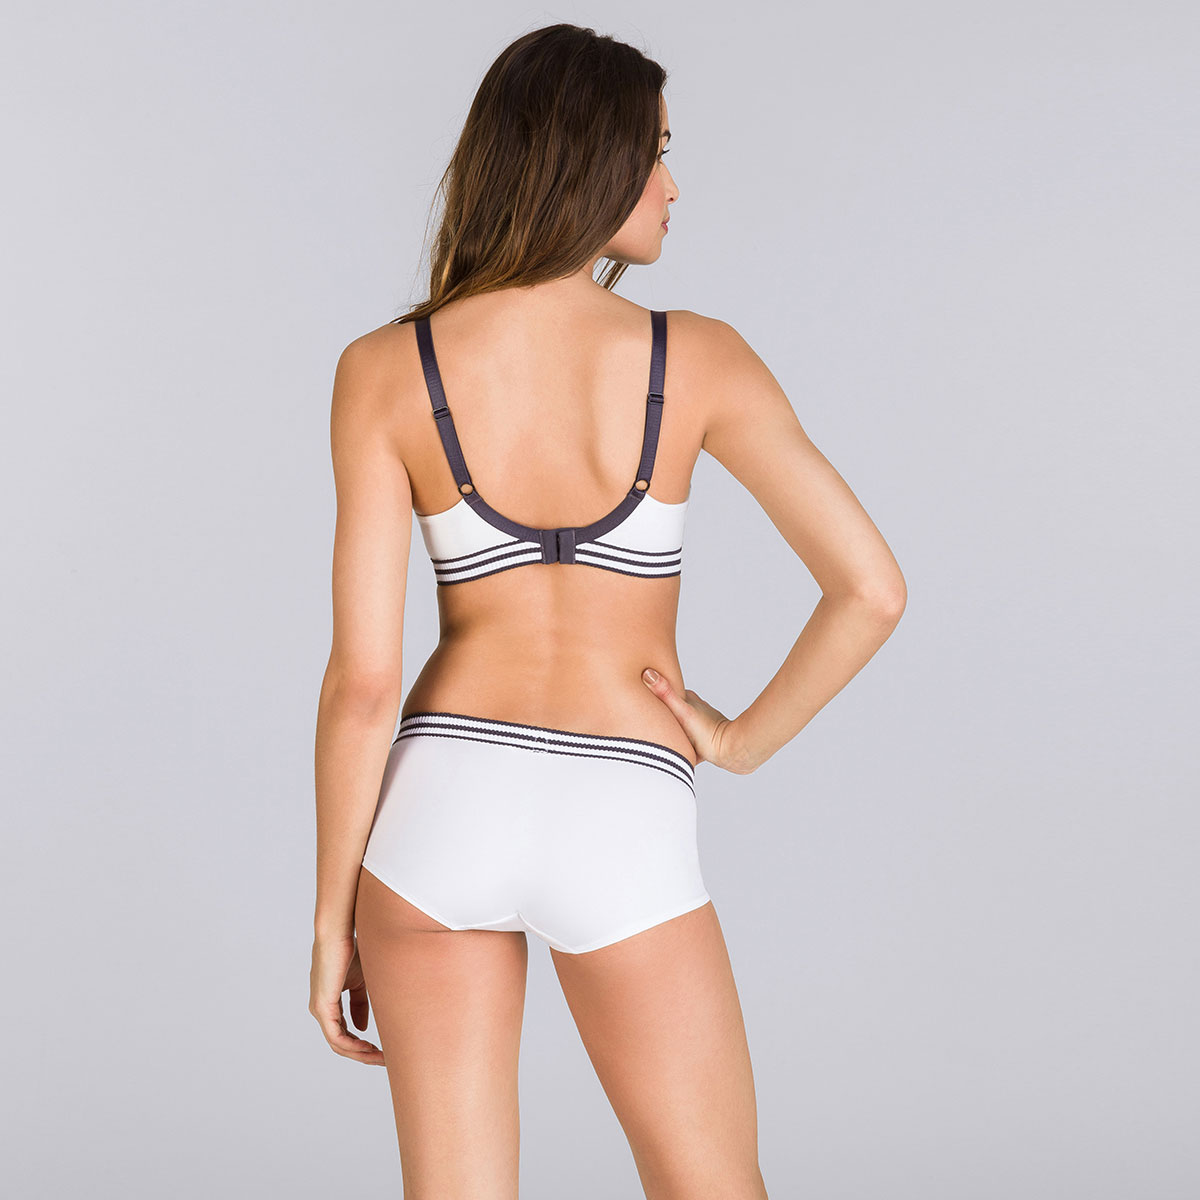 White and grey non-wired bra - Sporty Chic-PLAYTEX